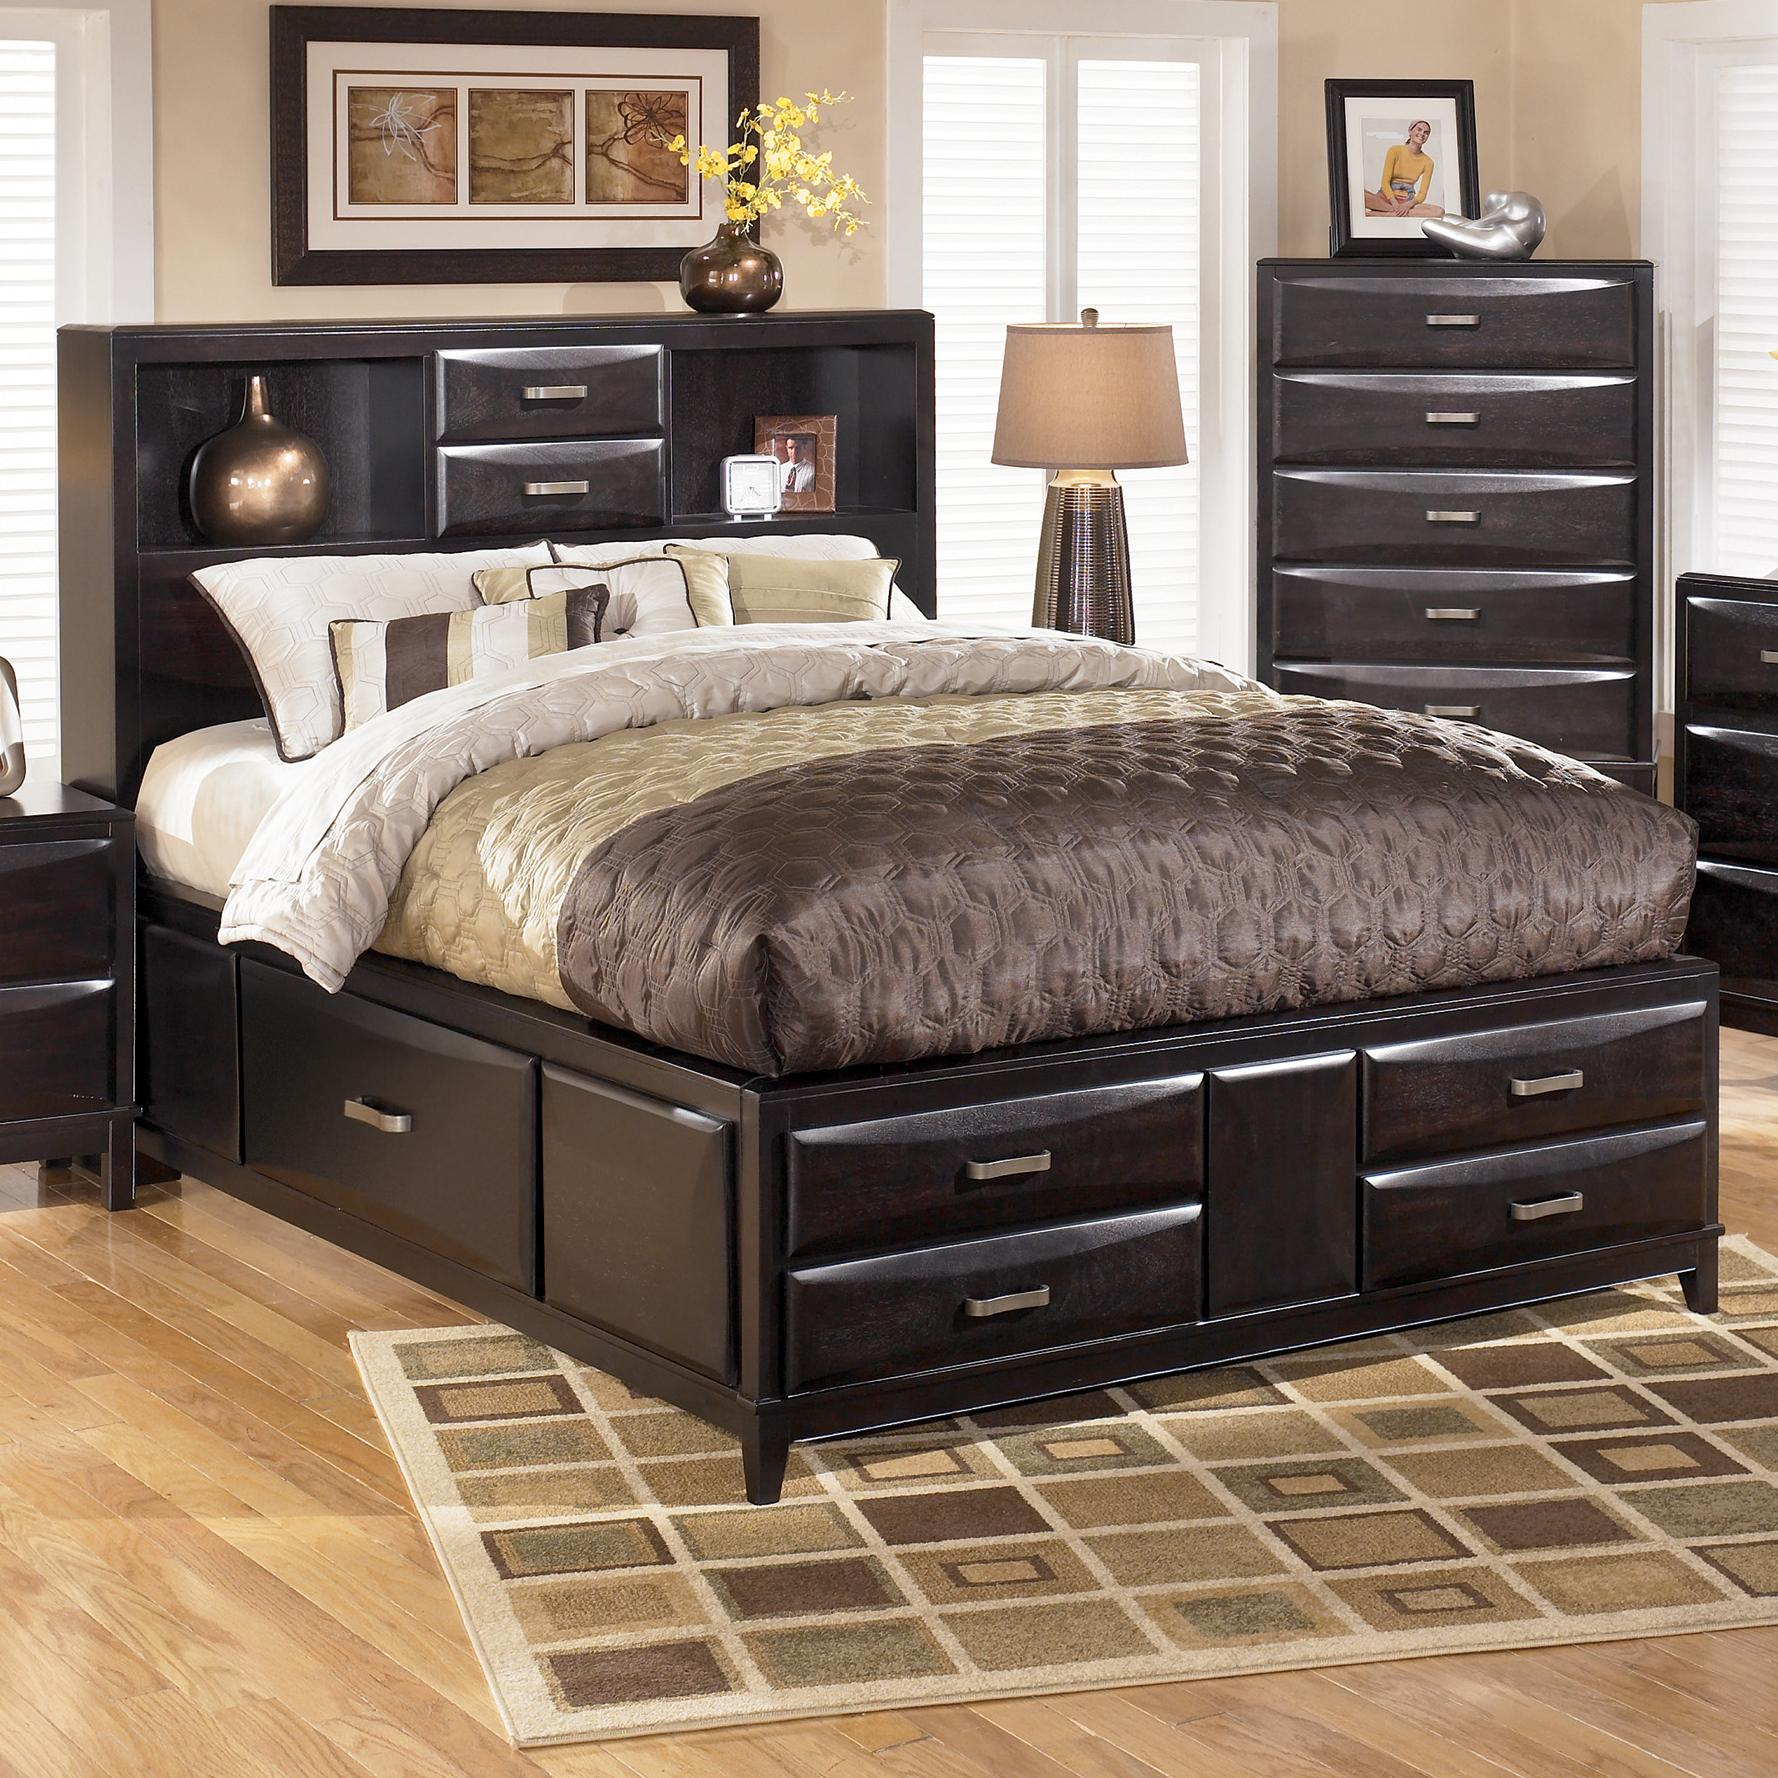 Ashley Furniture Clearance | Ashley Furniture Rochester Mn | Ashley Furniture Louisville